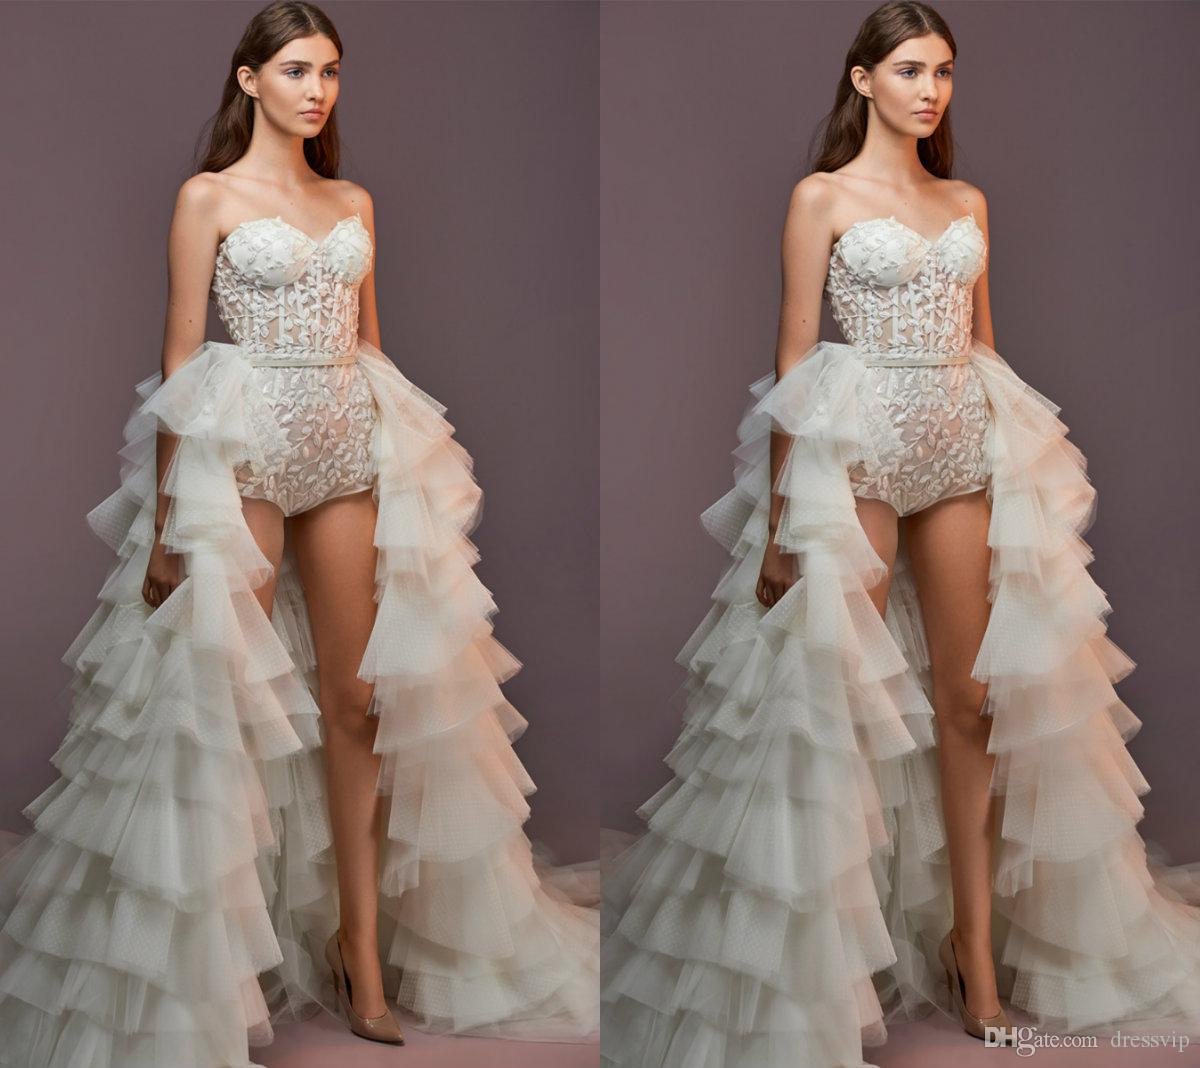 723e414a041a Discount 2018 Saiid Kobeisy Wedding Dresses Short Pants With Detachable  Train Sexy Sweetheart Beach Bridal Gowns Illusion Boho Lace Wedding Dress  Bridal .